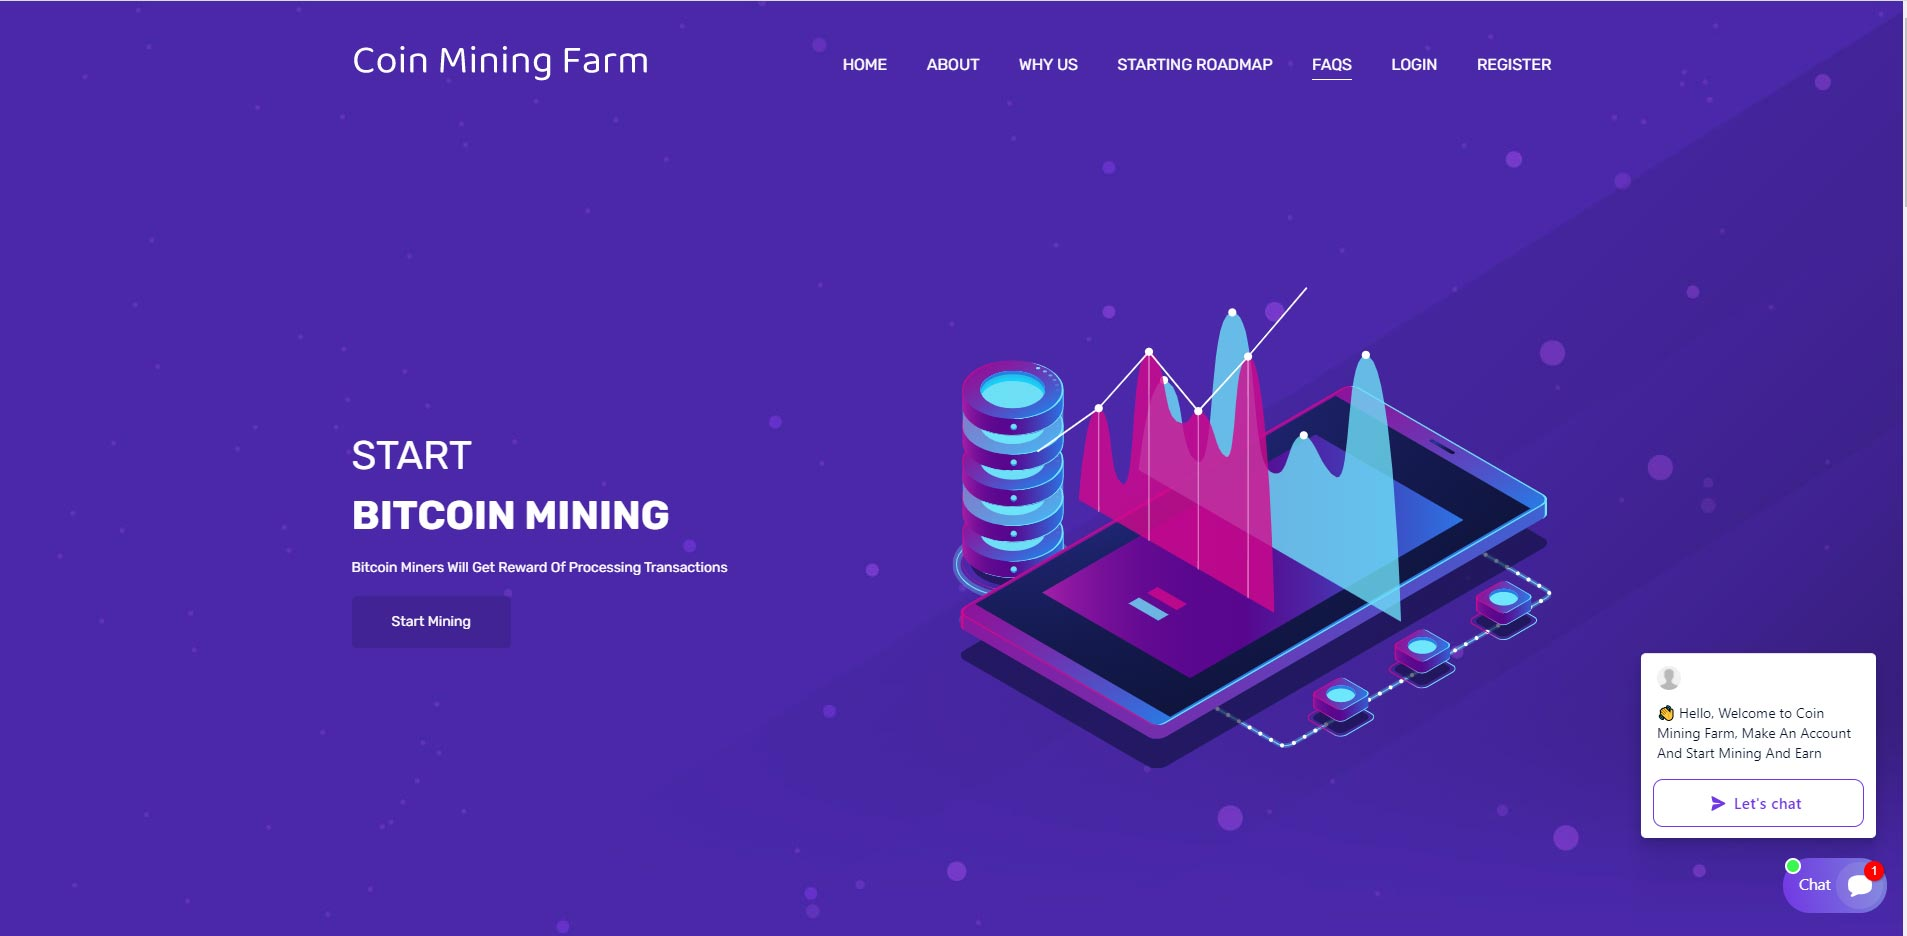 coin mining farm cloud mining